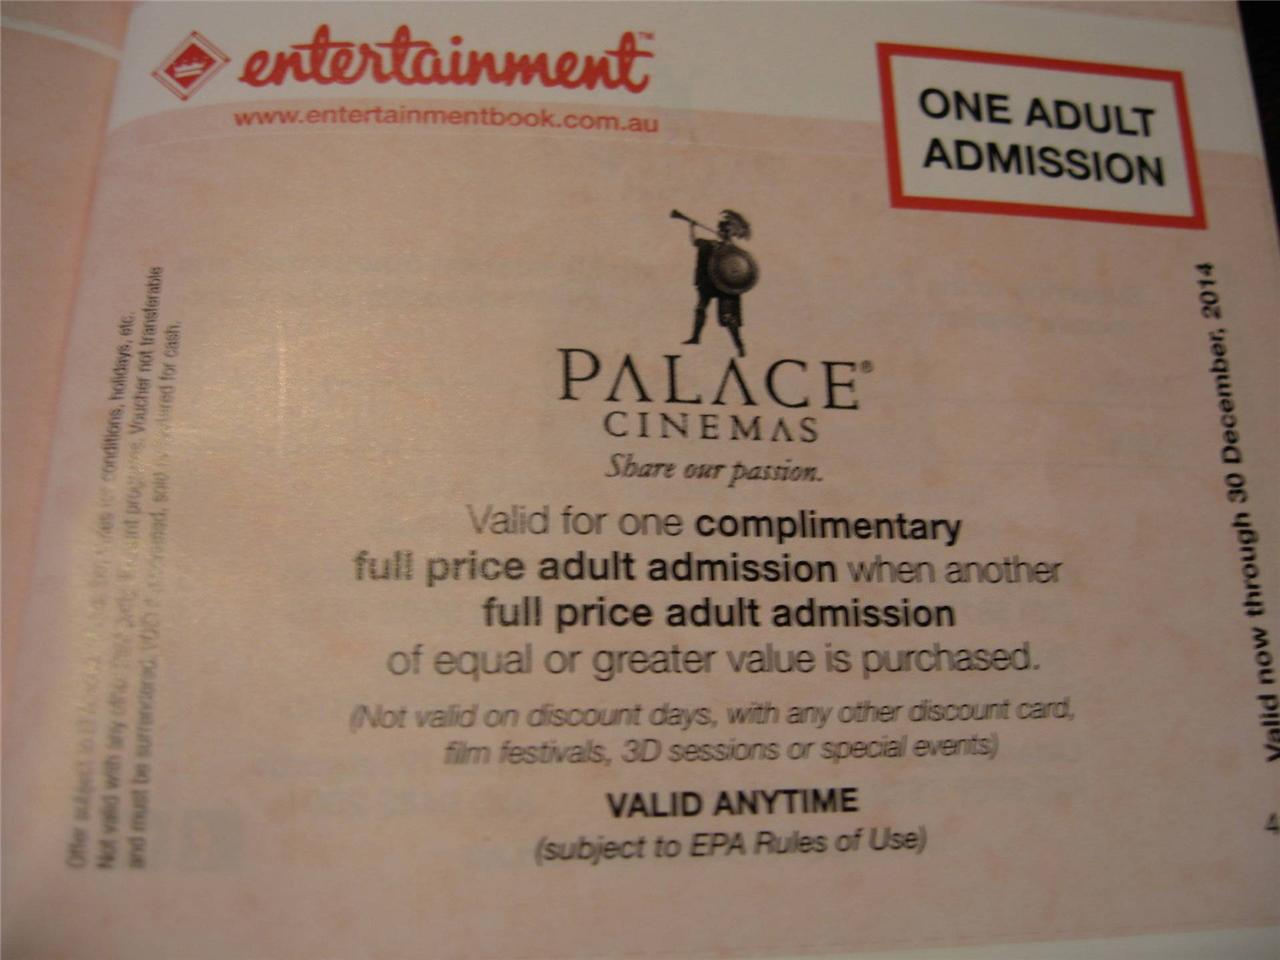 ENTERTAINMENT-BOOK-1-x-PALACE-CINEMAS-COMPLIMENTARY-ADULT-ADMISSION-VIC-ONLY